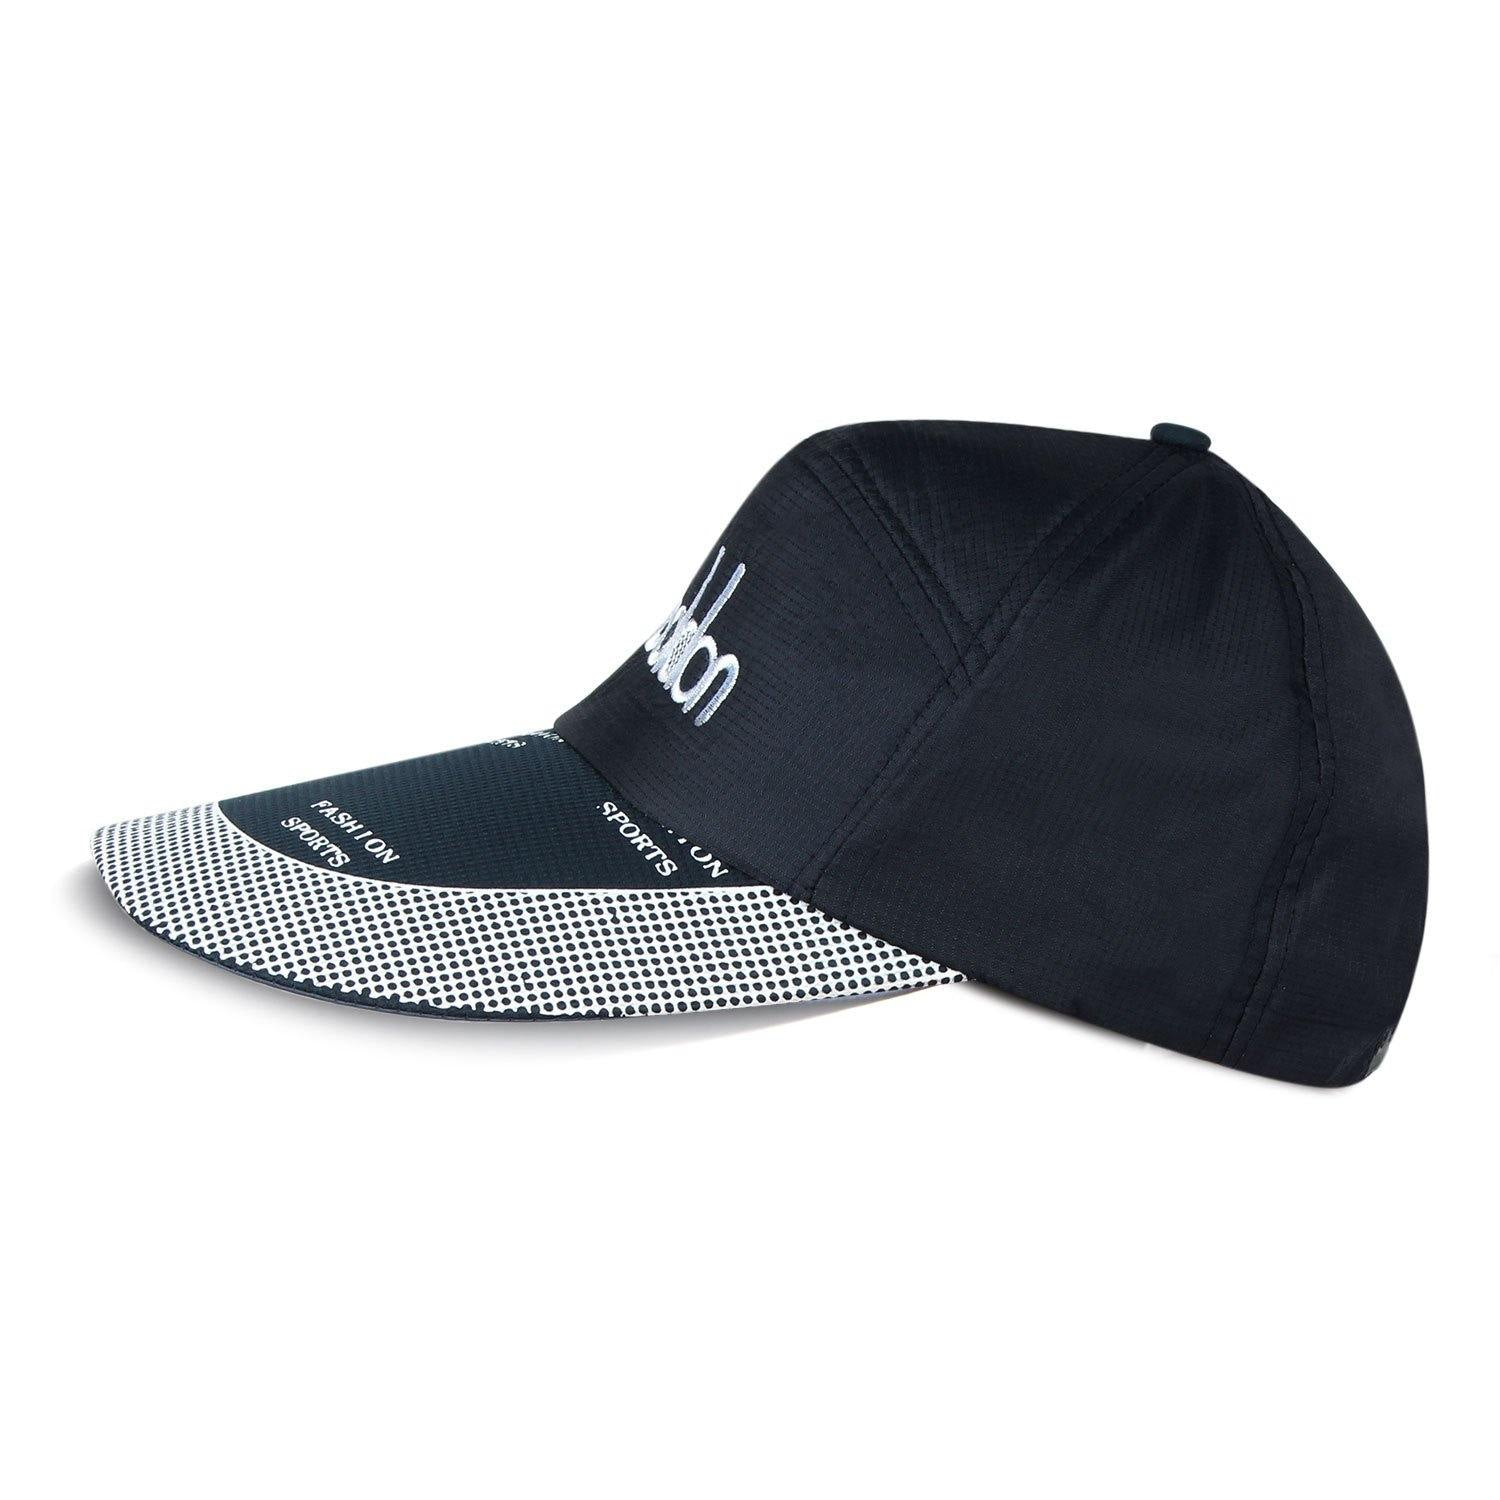 Fashionable Cotton Adjustable Summer Sports Cap with Stylish Brim For Men - Navy